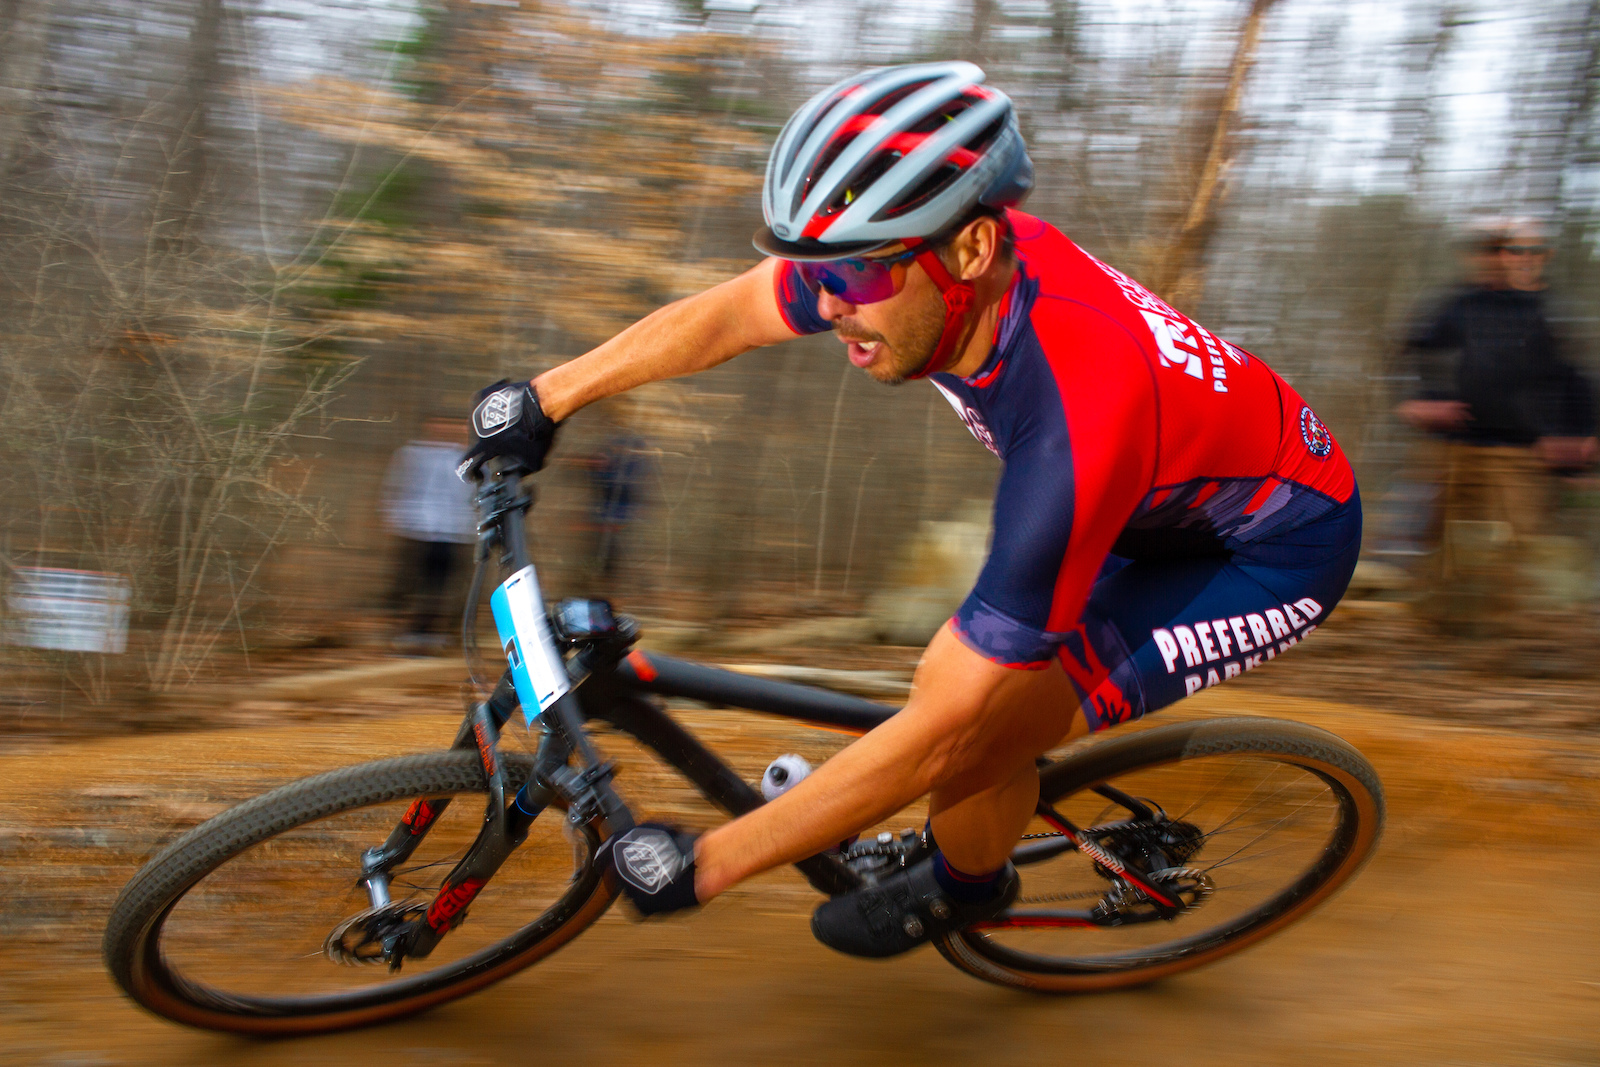 BMX and Downhill Legend racing XC in Charlotte NC. February 2020.